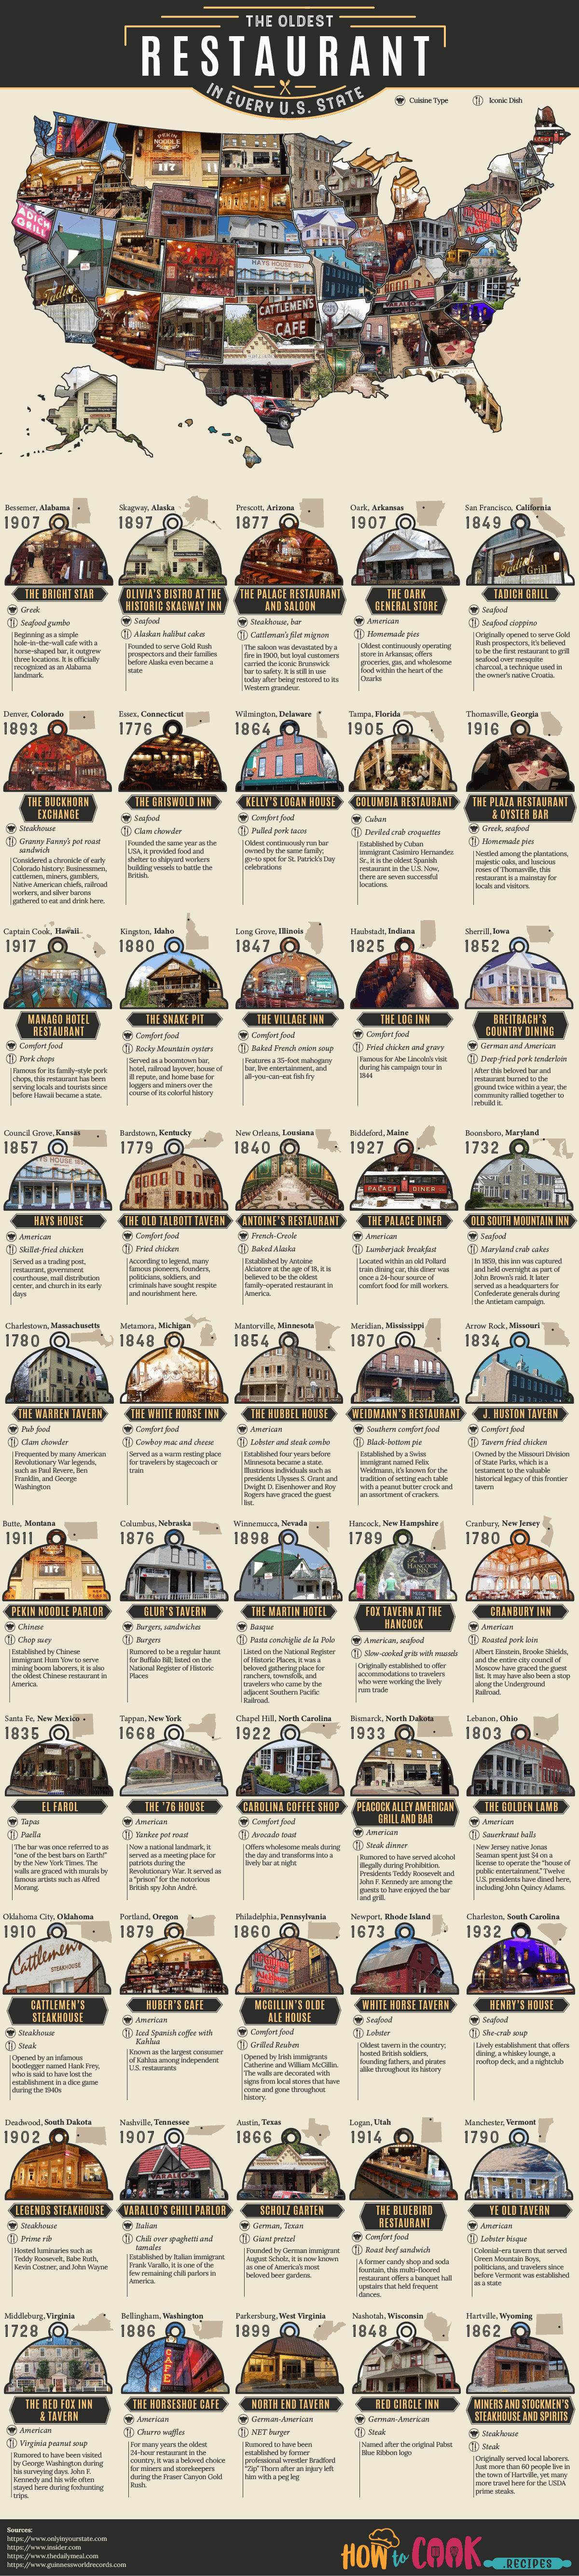 The Oldest Restaurant in Every U.S. State - Infographic